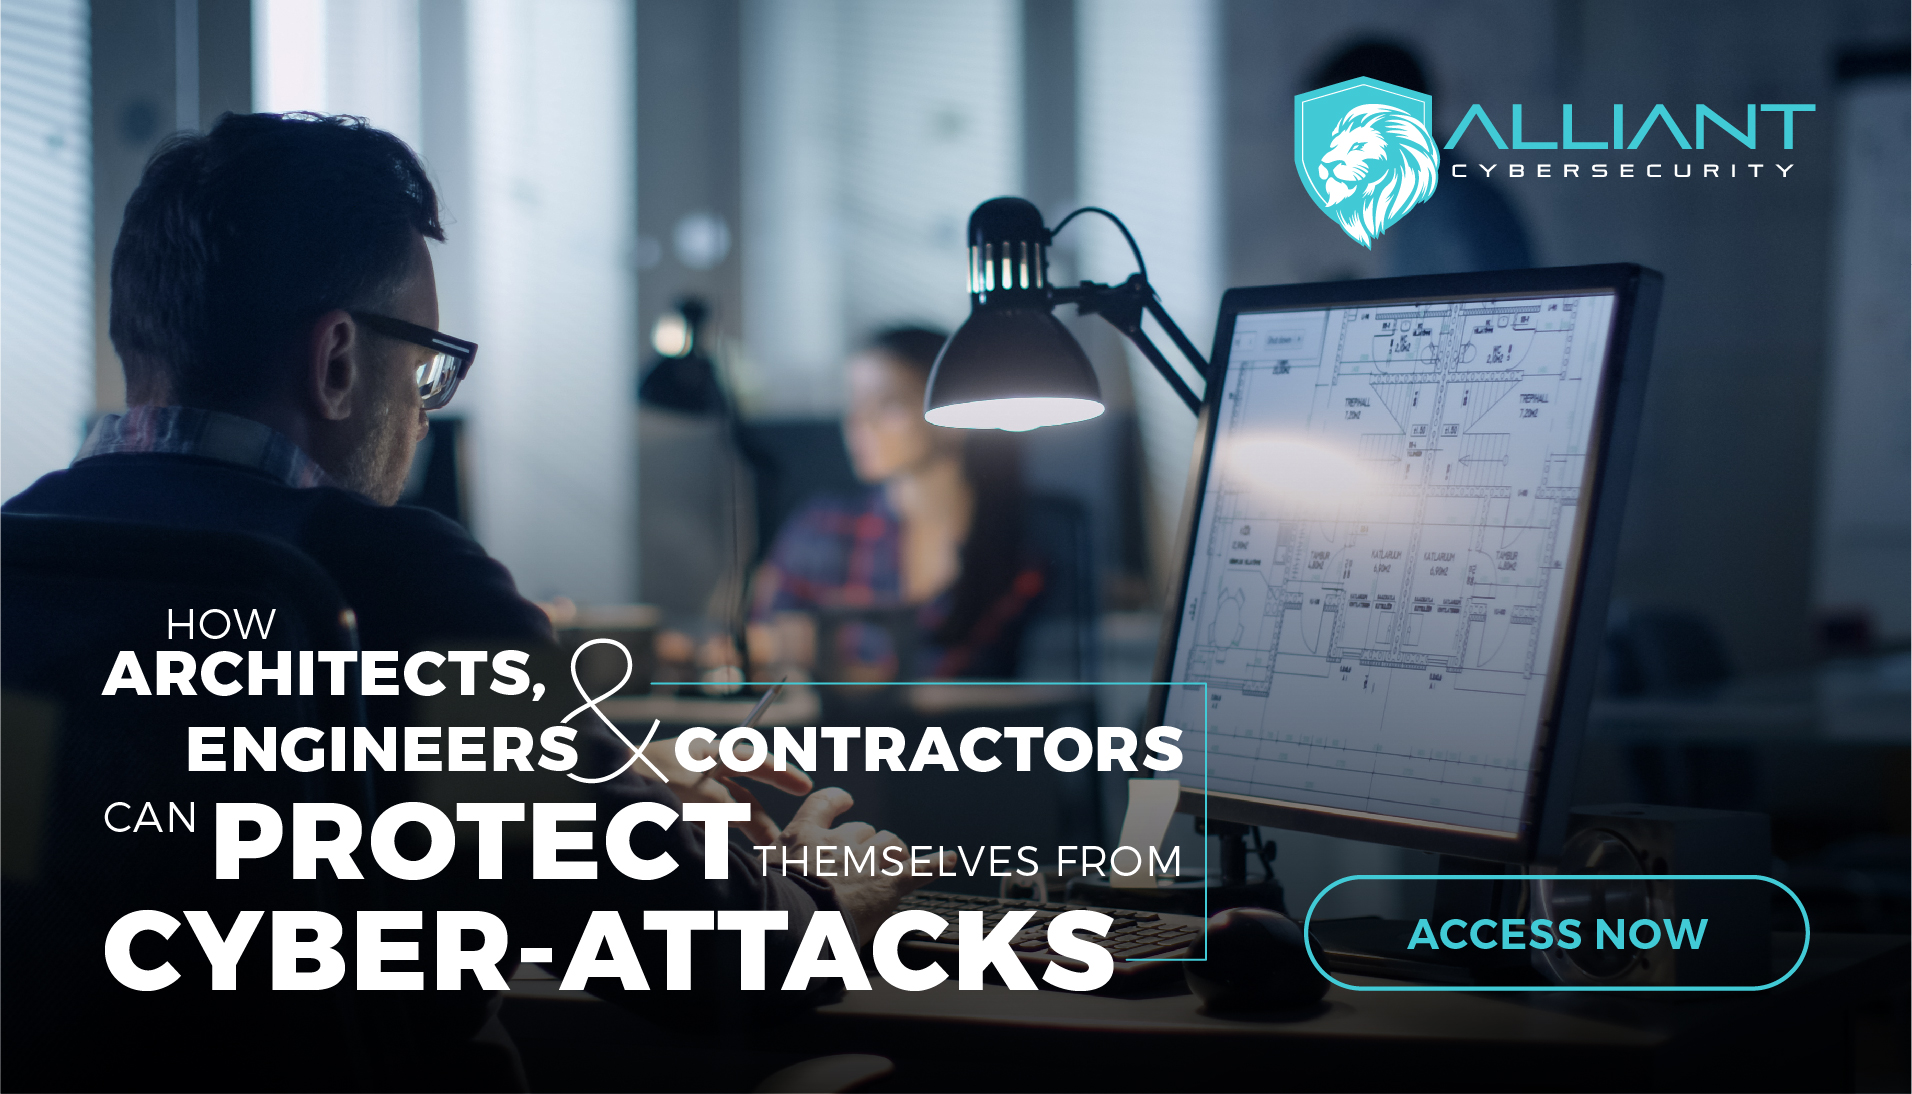 How Architects, Engineers And Contractors Can Protect Themselves From Cyber-Attacks